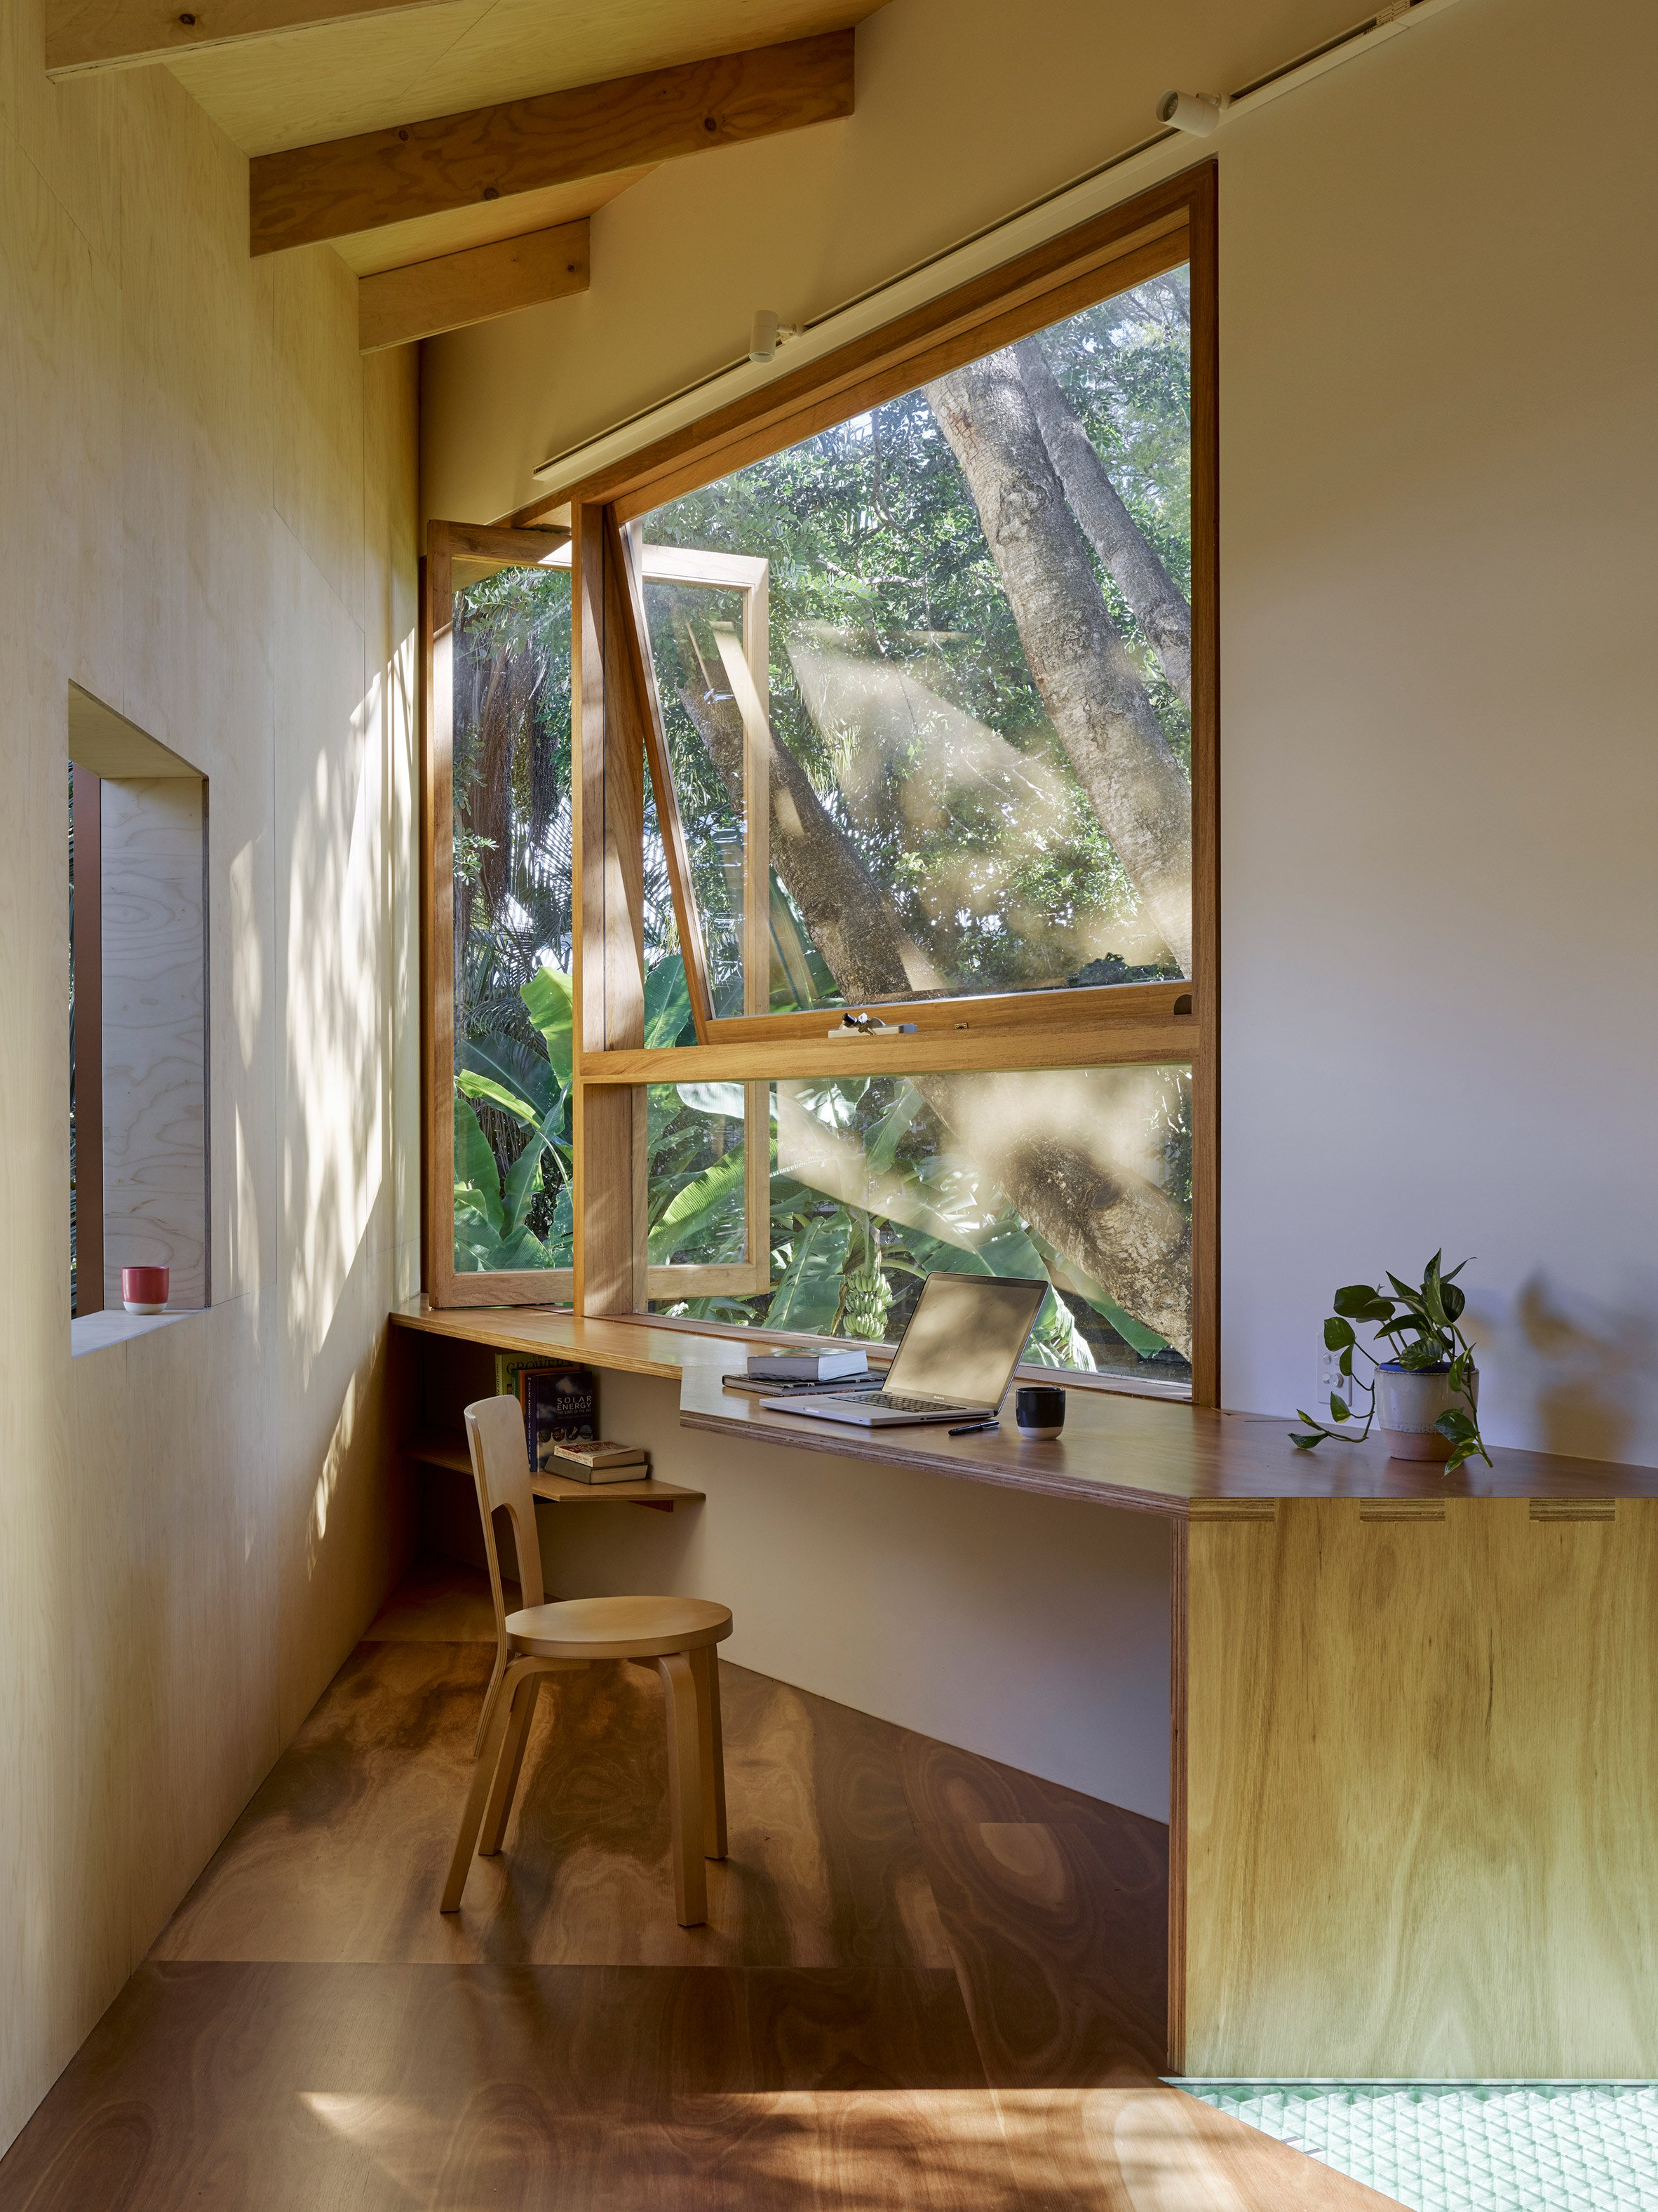 Tiny home meets treehouse in this angular backyard extension